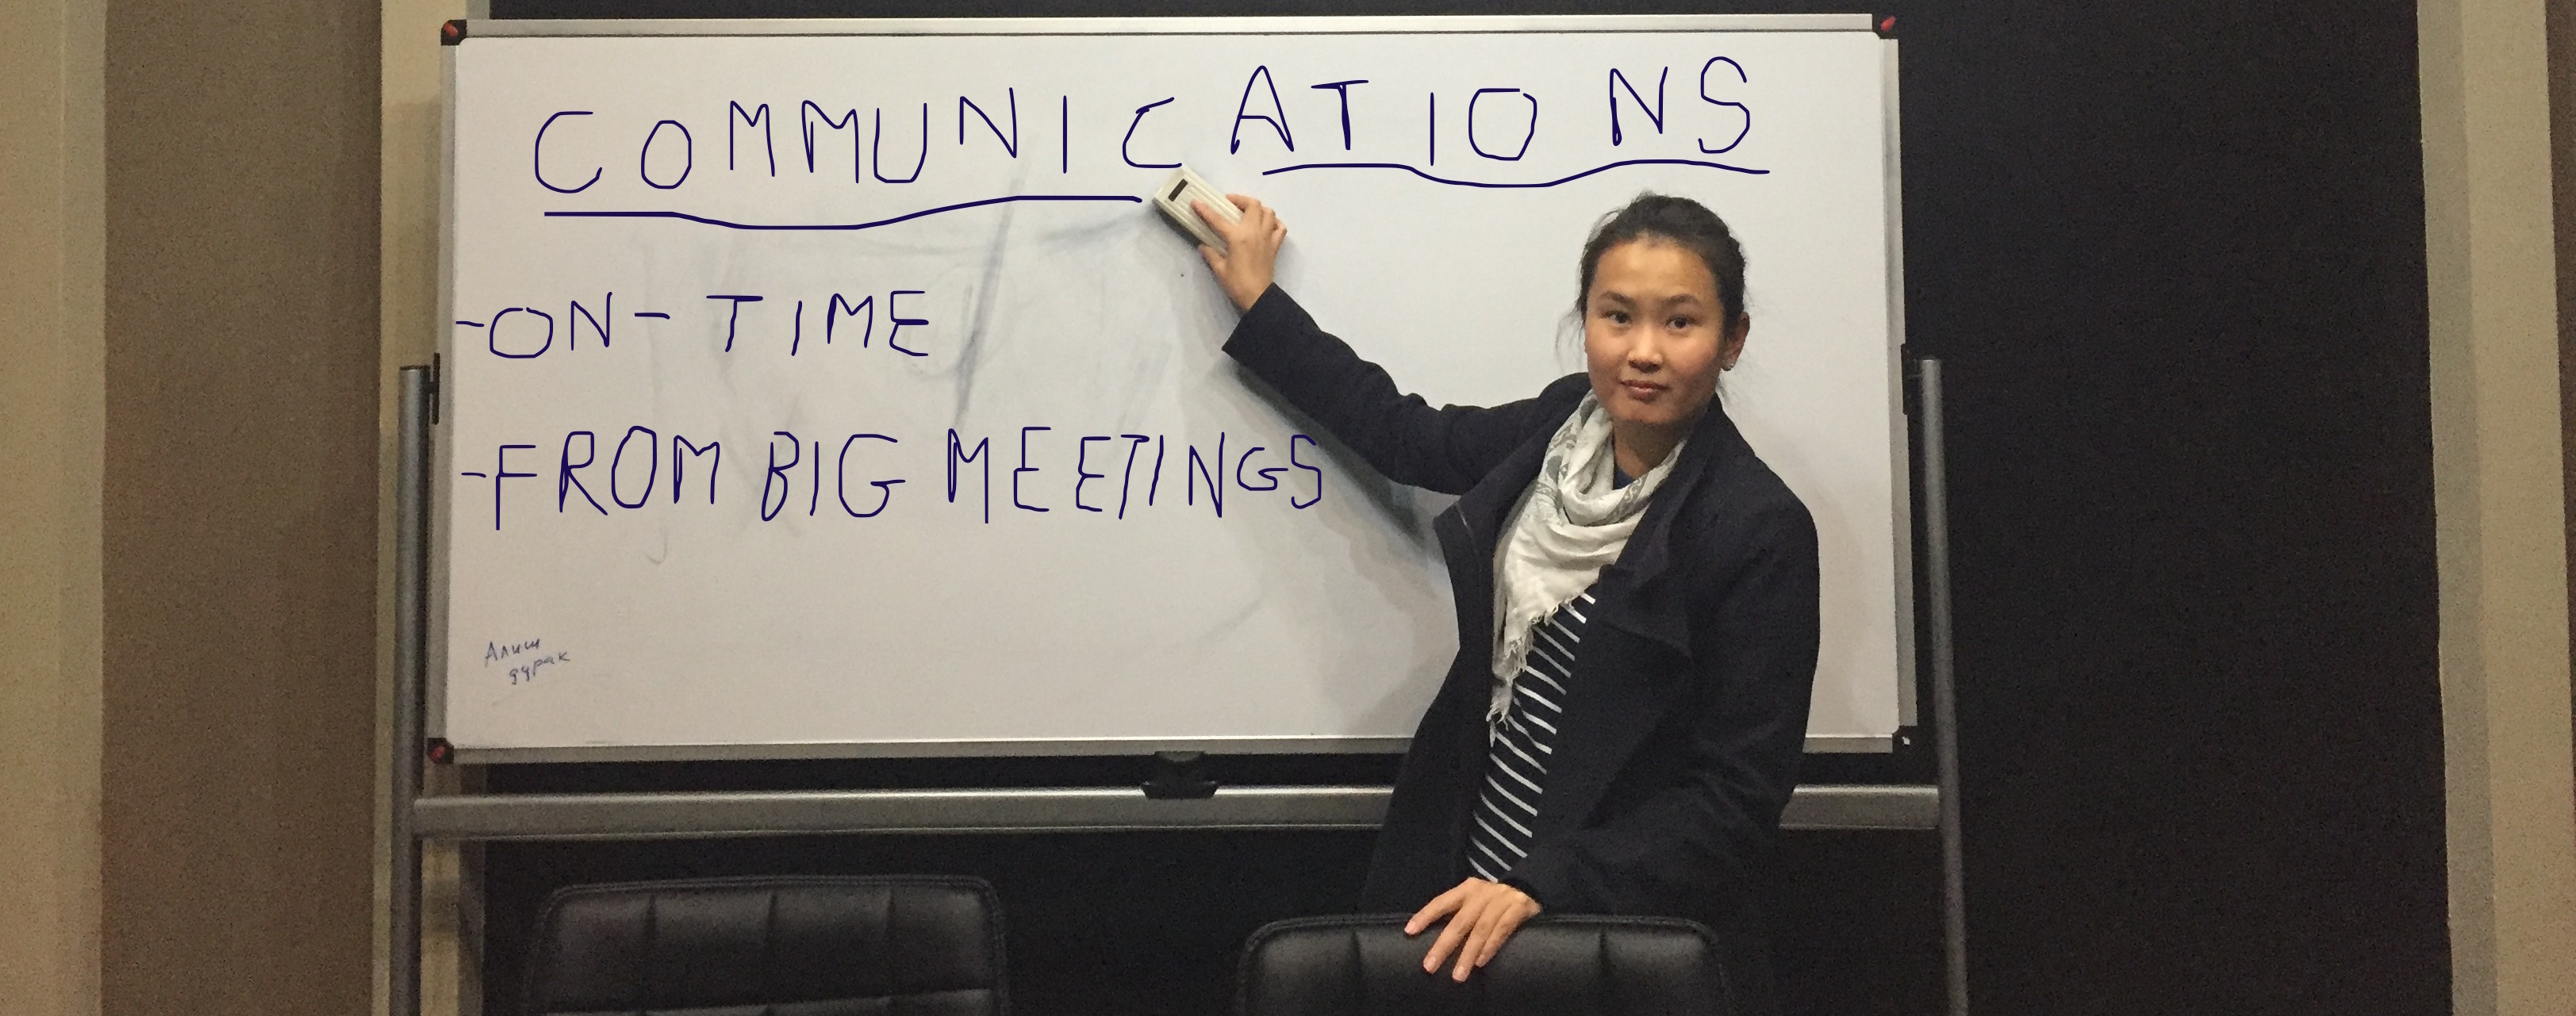 Big meeting on-time communications